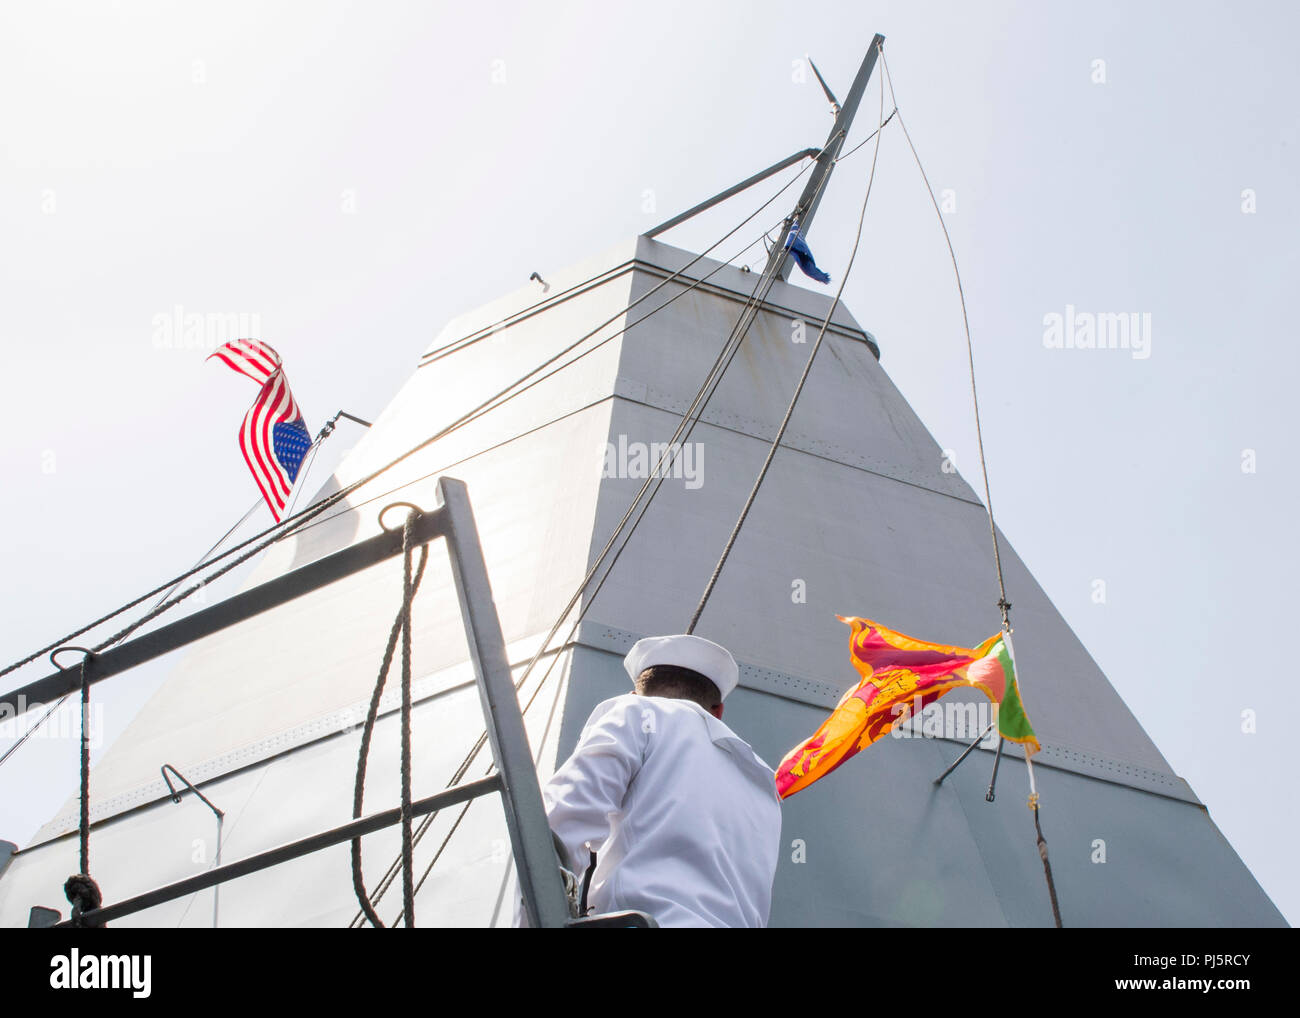 180824-N-PH222-0441 TRINCOMALEE, SRI LANKA (August 24, 2018) Quartermaster 2nd Class Brandon Sassone, from Plainview, N.Y., hoists the Sri Lankan nation flag from the bridge wing of San Antonio-class amphibious transport dock USS Anchorage (LPD 23) before a scheduled port visit in Trincomalee, Sri Lanka during a regularly scheduled deployment of the Essex Amphibious Ready Group (ARG) and 13th Marine Expeditionary Unit (MEU). Anchorage and the embarked Marines of the 13th MEU are conducting a theater security cooperation exercise with the Sri Lankan Navy and the Navy Marines. Part of a growing  - Stock Image